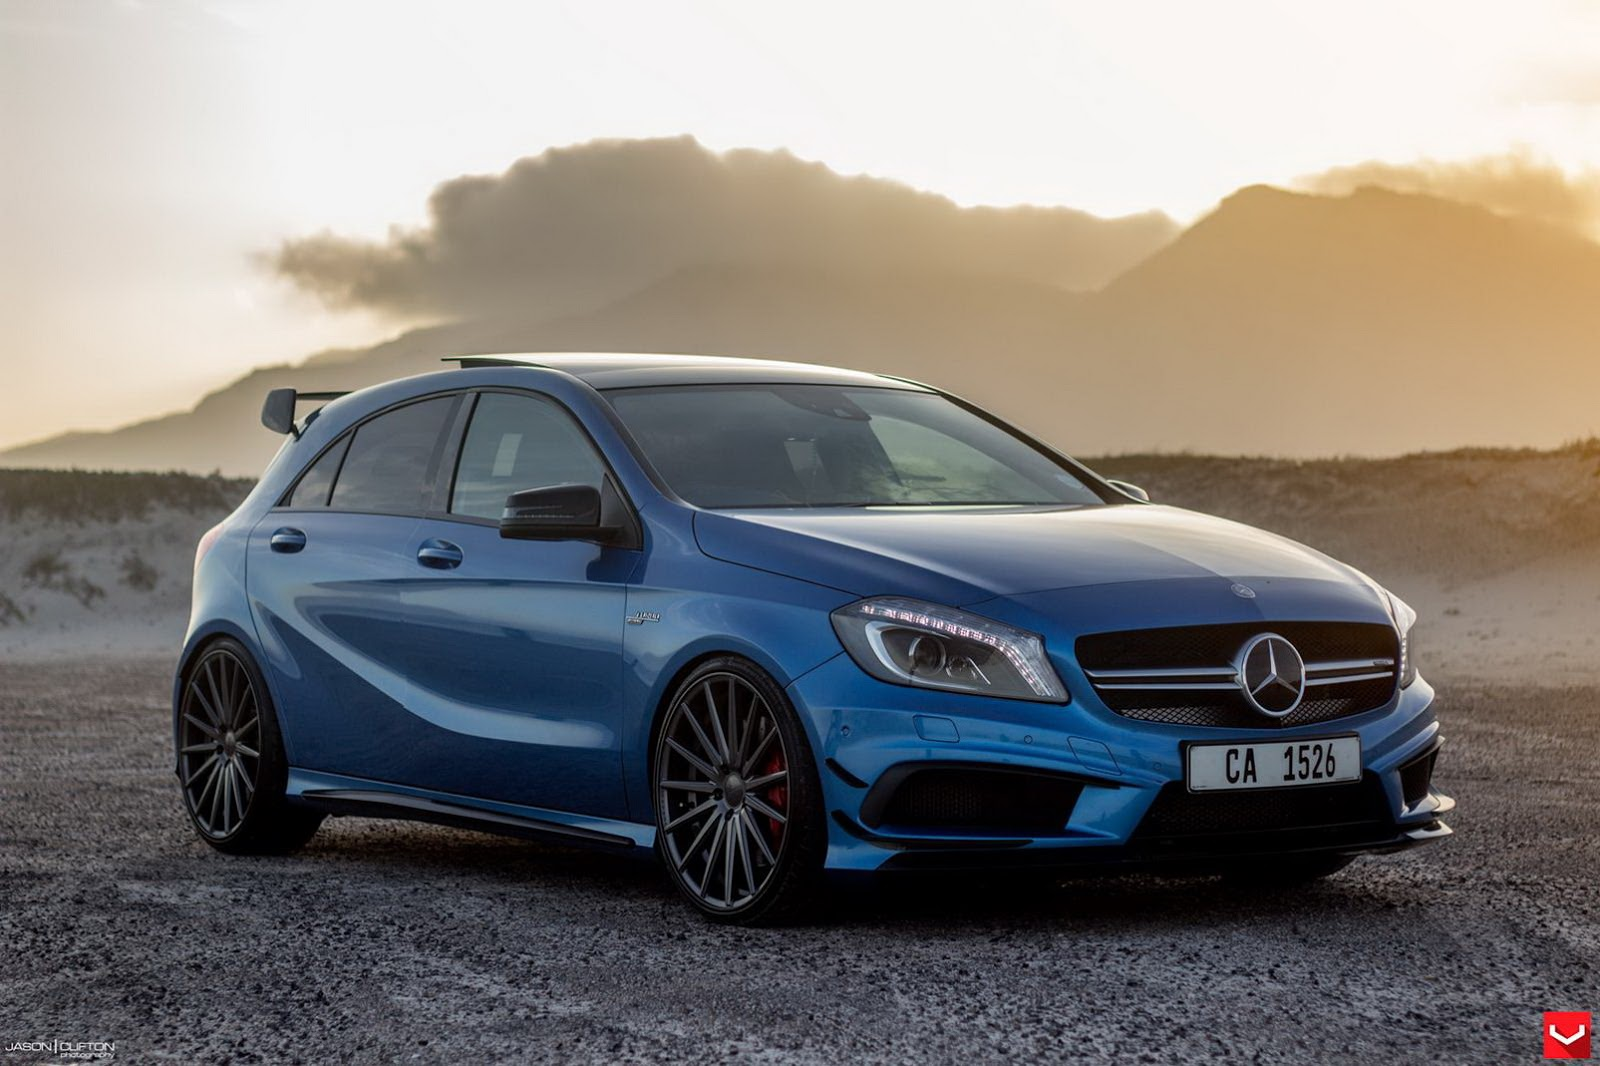 Stunning blue mercedes benz a45 amg poses gtspirit for Mercedes benz a45 amg